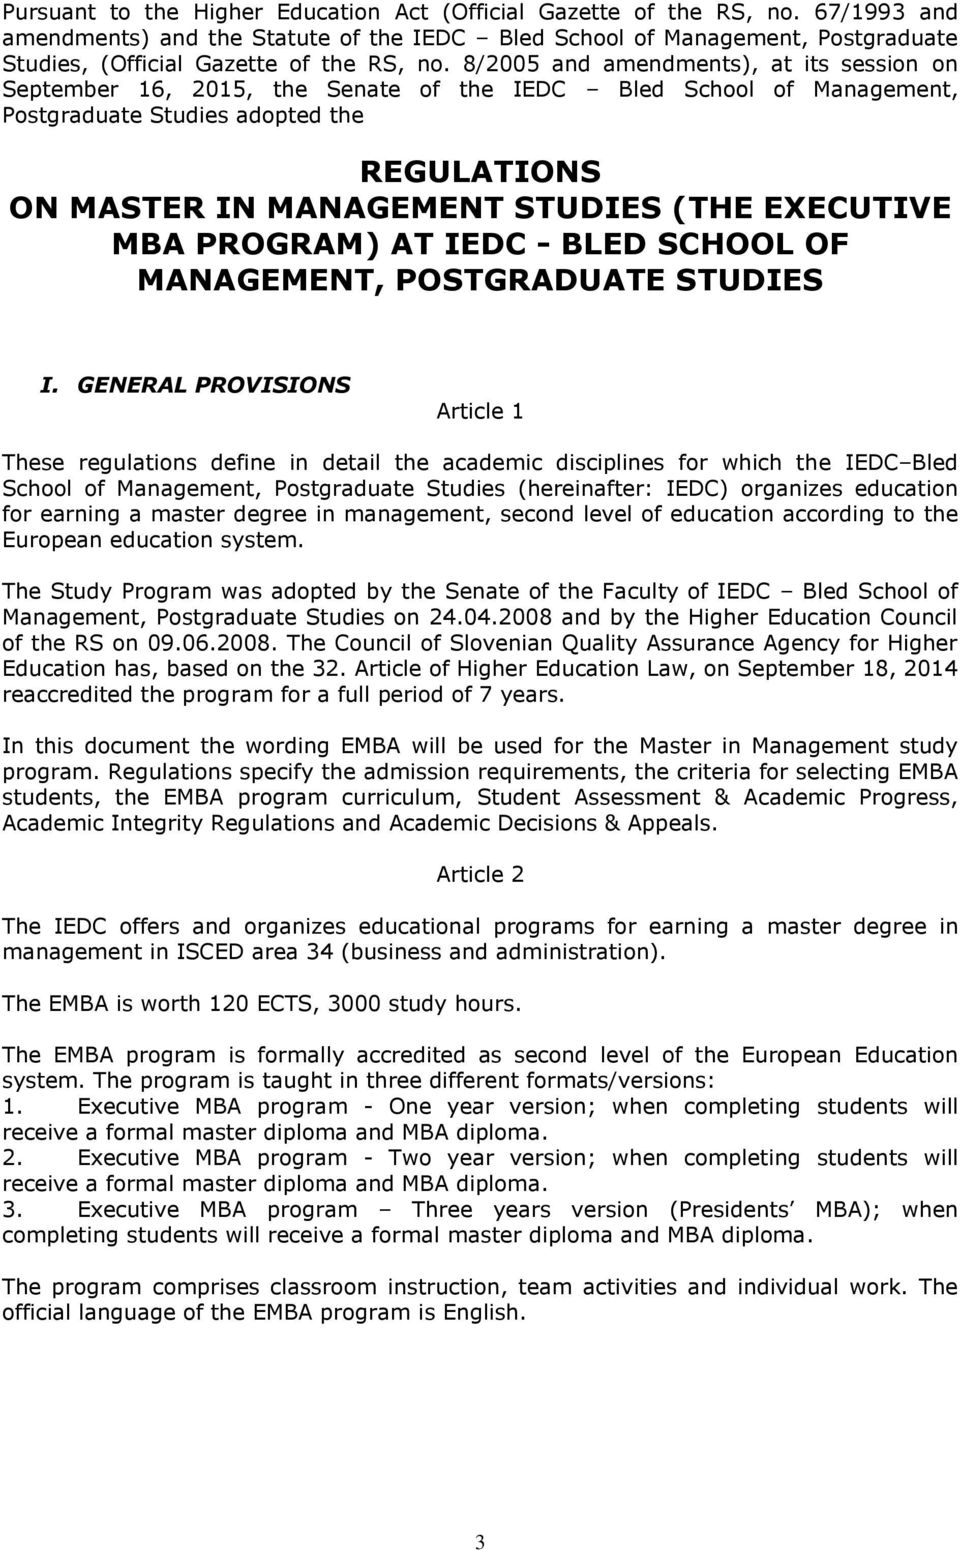 8/2005 and amendments), at its session on September 16, 2015, the Senate of the IEDC Bled School of Management, Postgraduate Studies adopted the REGULATIONS ON MASTER IN MANAGEMENT STUDIES (THE